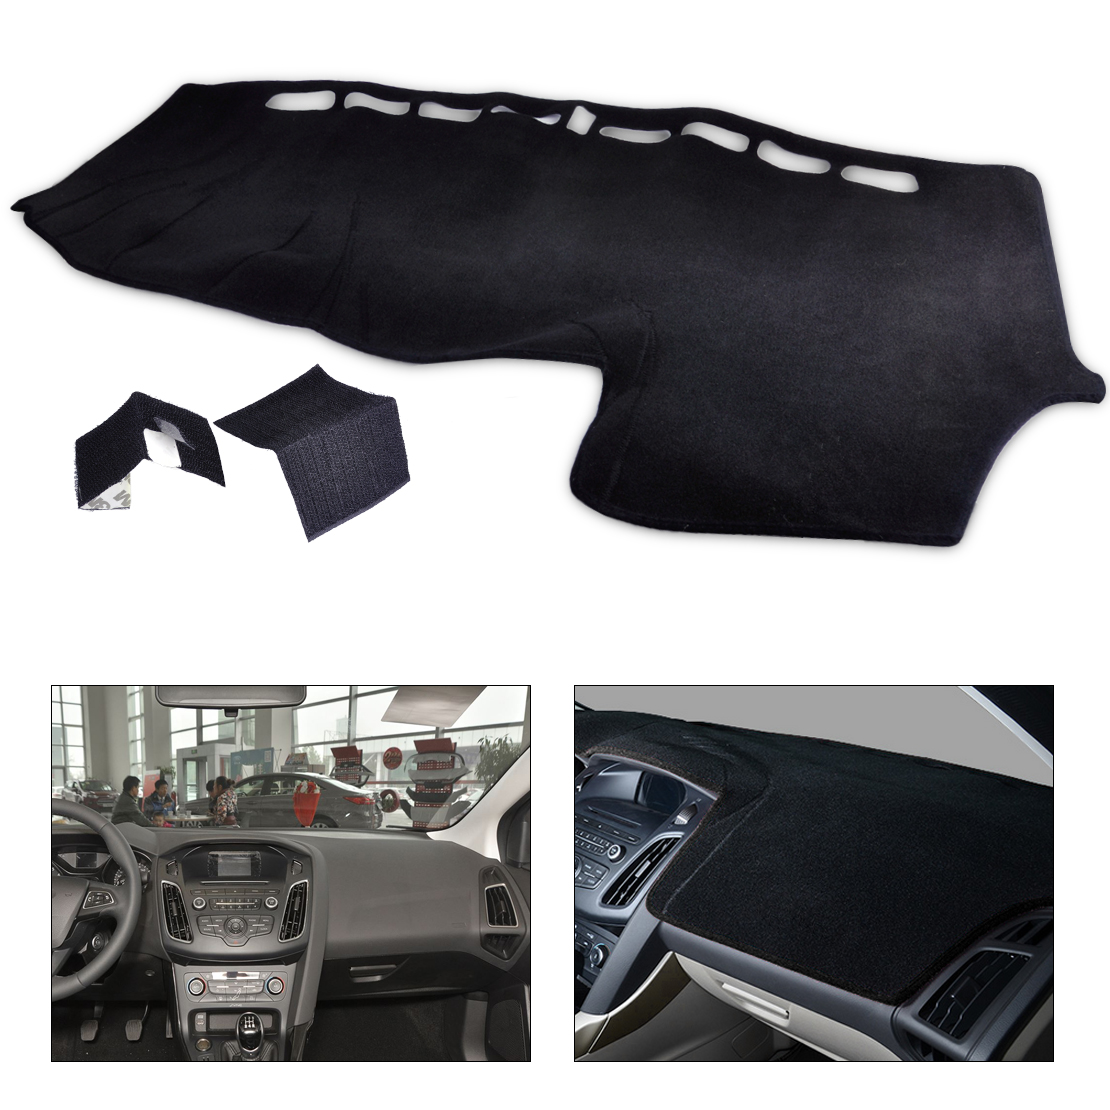 Dwcx lhd inner dashboard carpet dash cover pad dashmat mat sun shade protector fit for ford